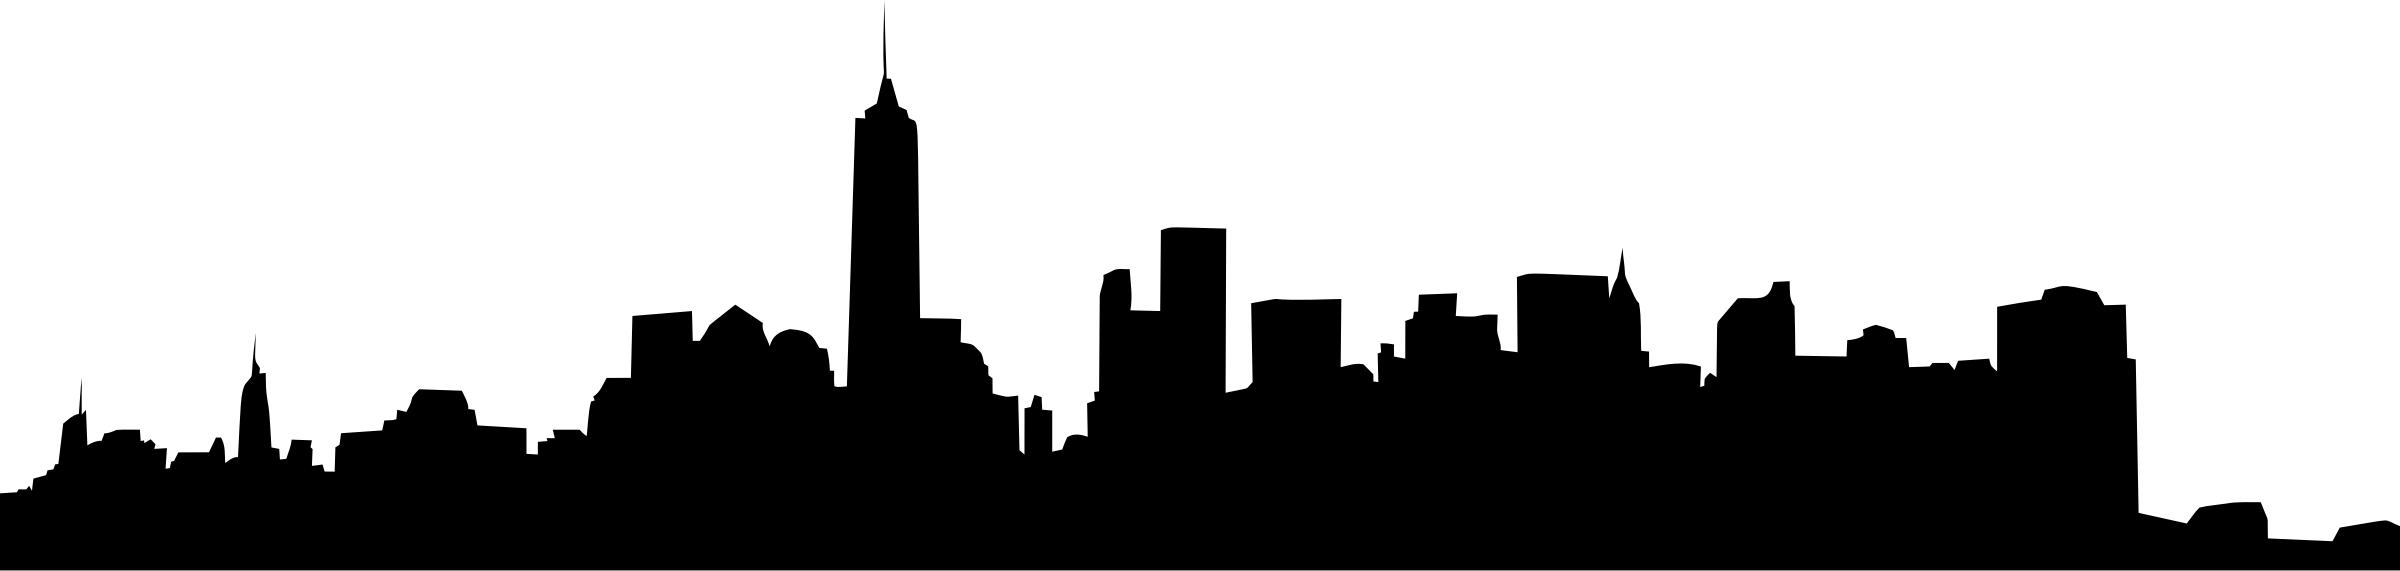 2400x571 New York Central Park Skyline Silhouette Icons Png